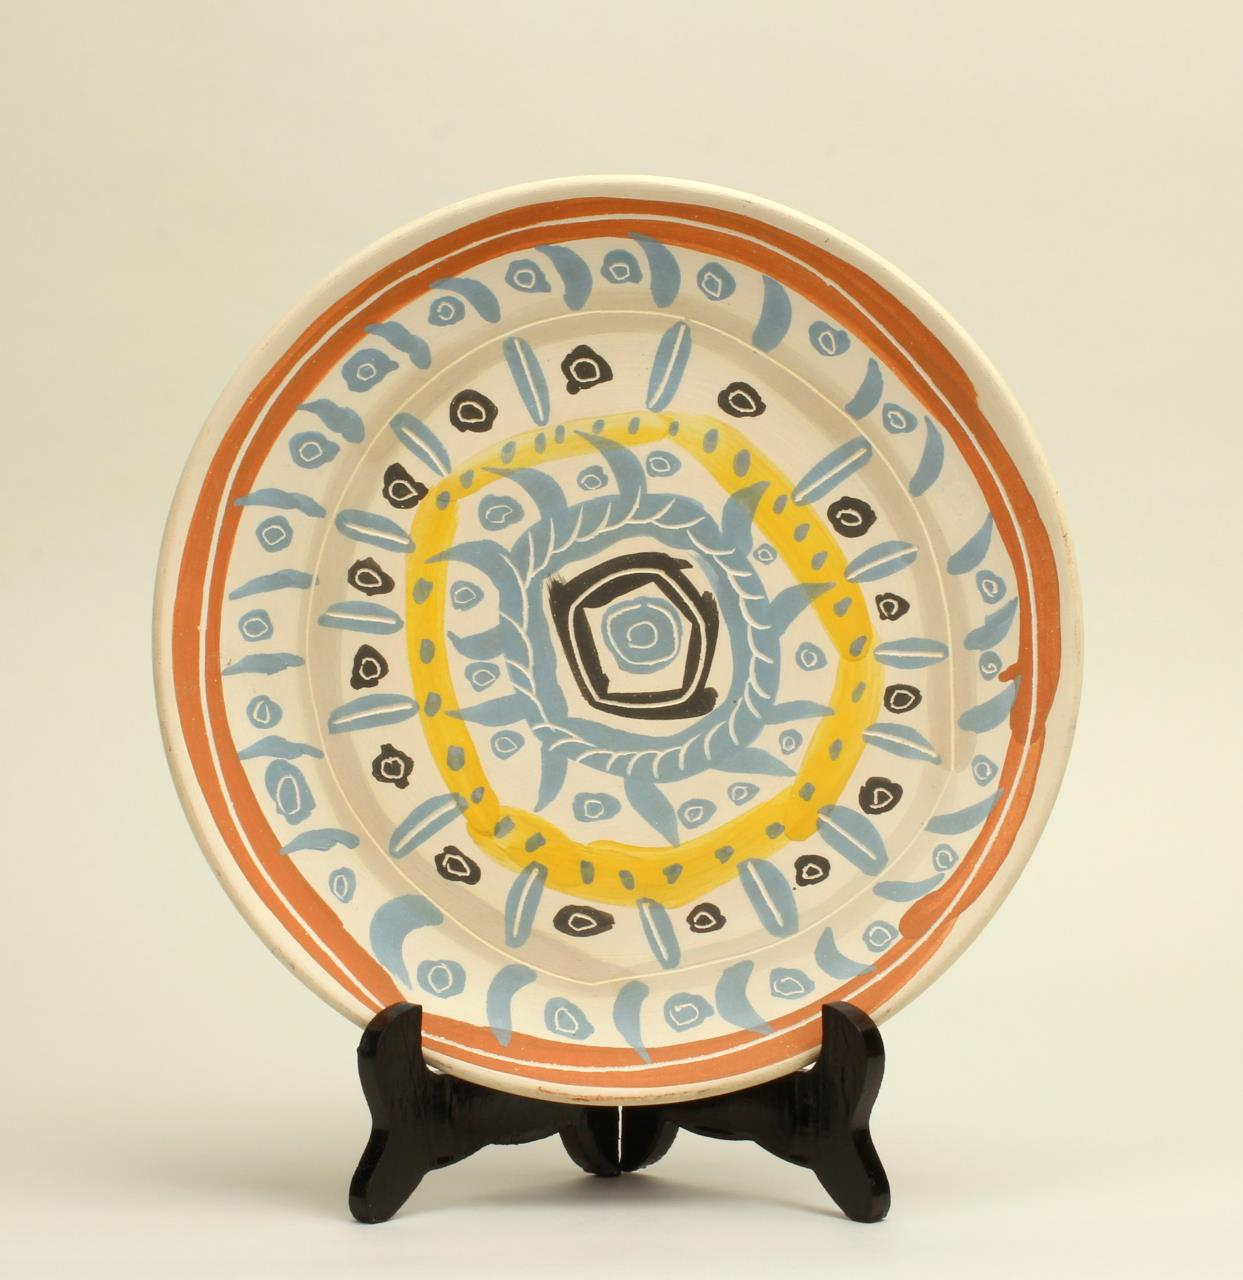 Pablo Picasso, Spanish (1881-1973), Motif Spirale partially glazed ceramic plate,